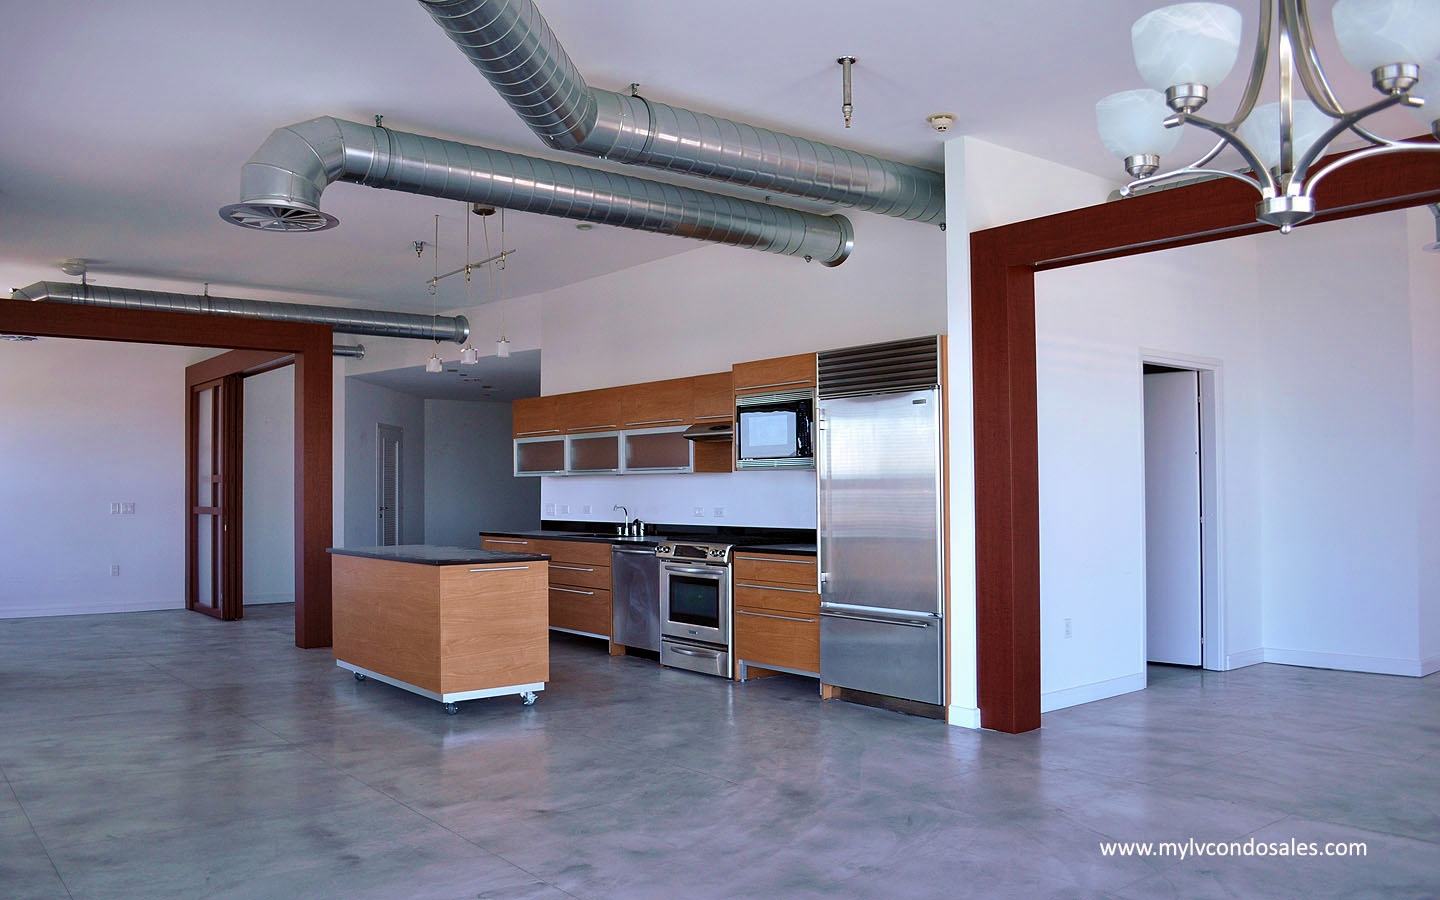 Newport Lofts Market Report For July 2011 Las Vegas Condos For Sale